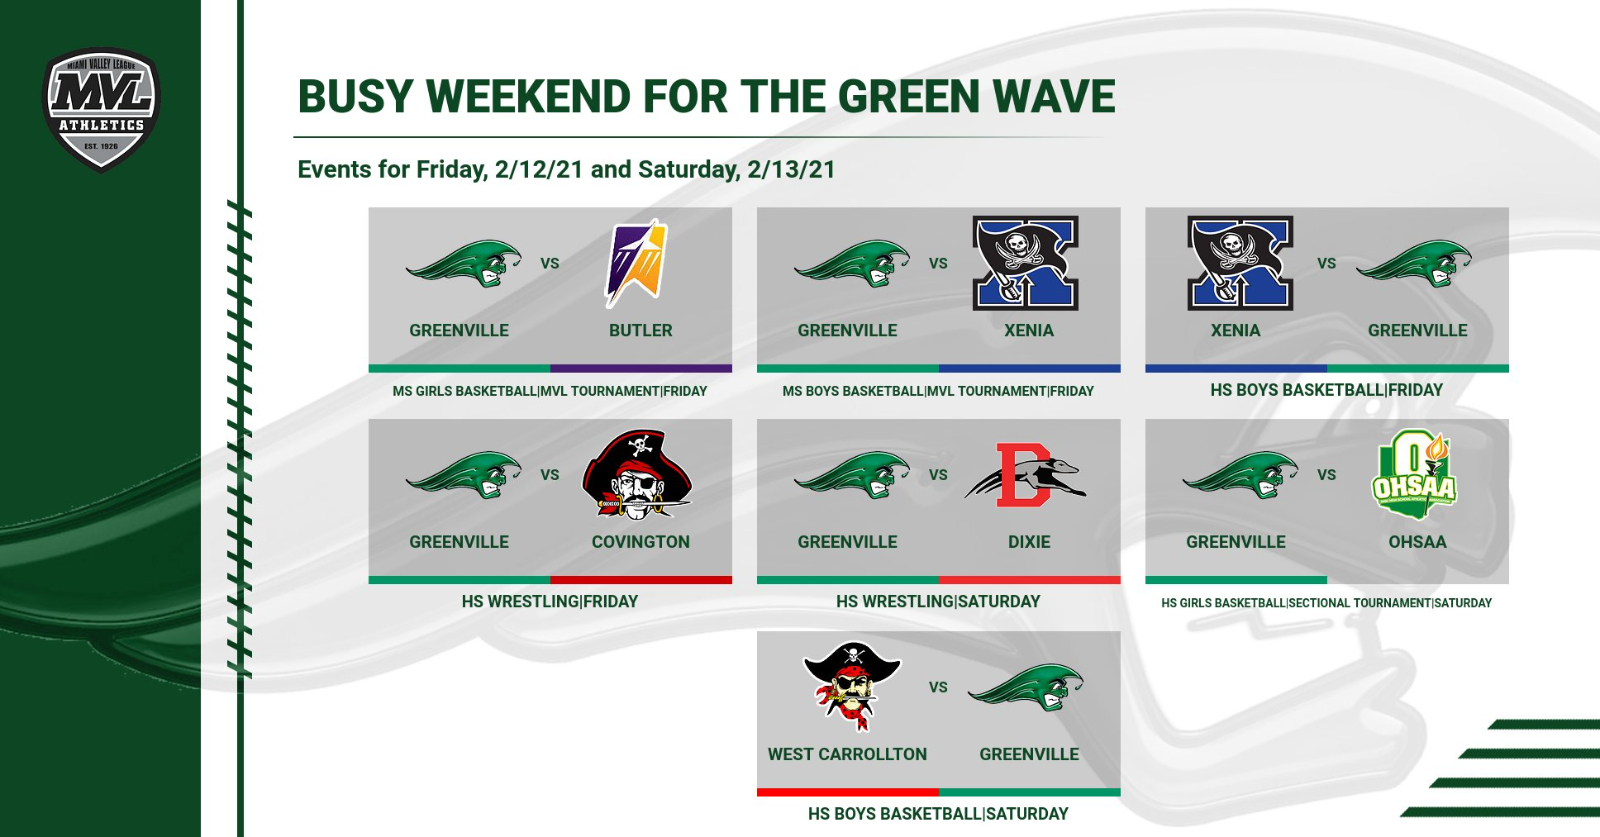 Busy Weekend for the Green Wave